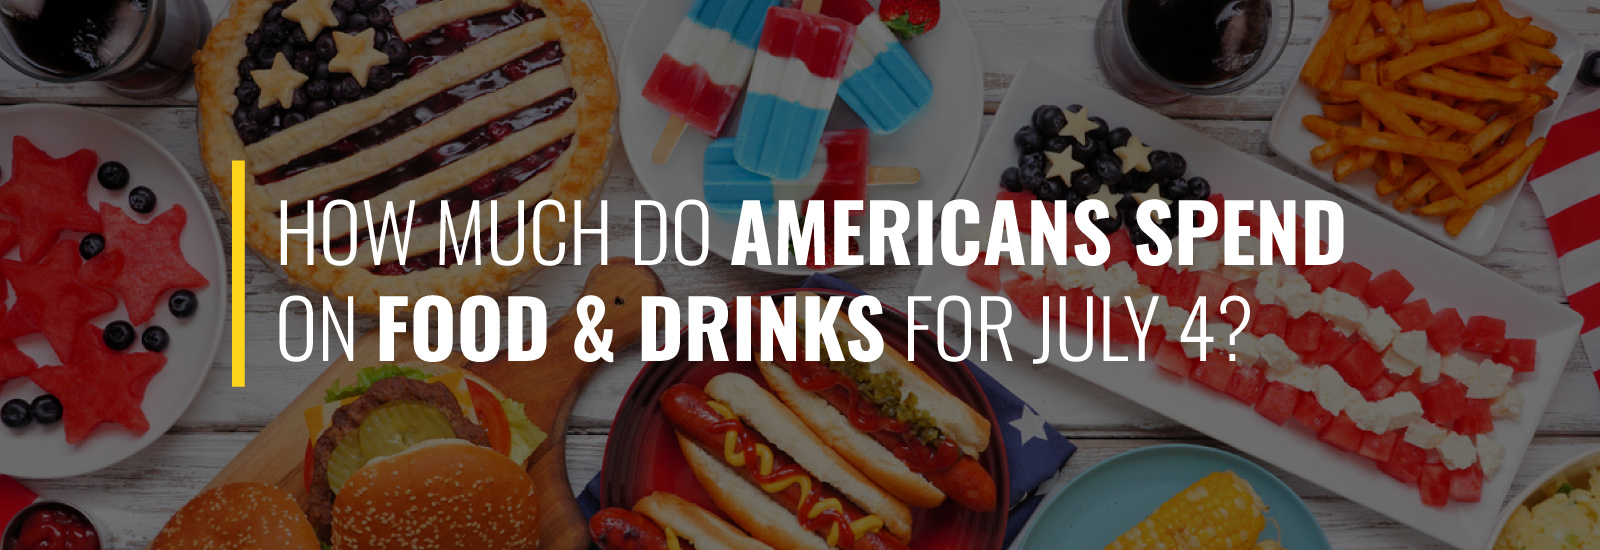 How Much Do Americans Spend on Food and Drinks During the 4th of July?